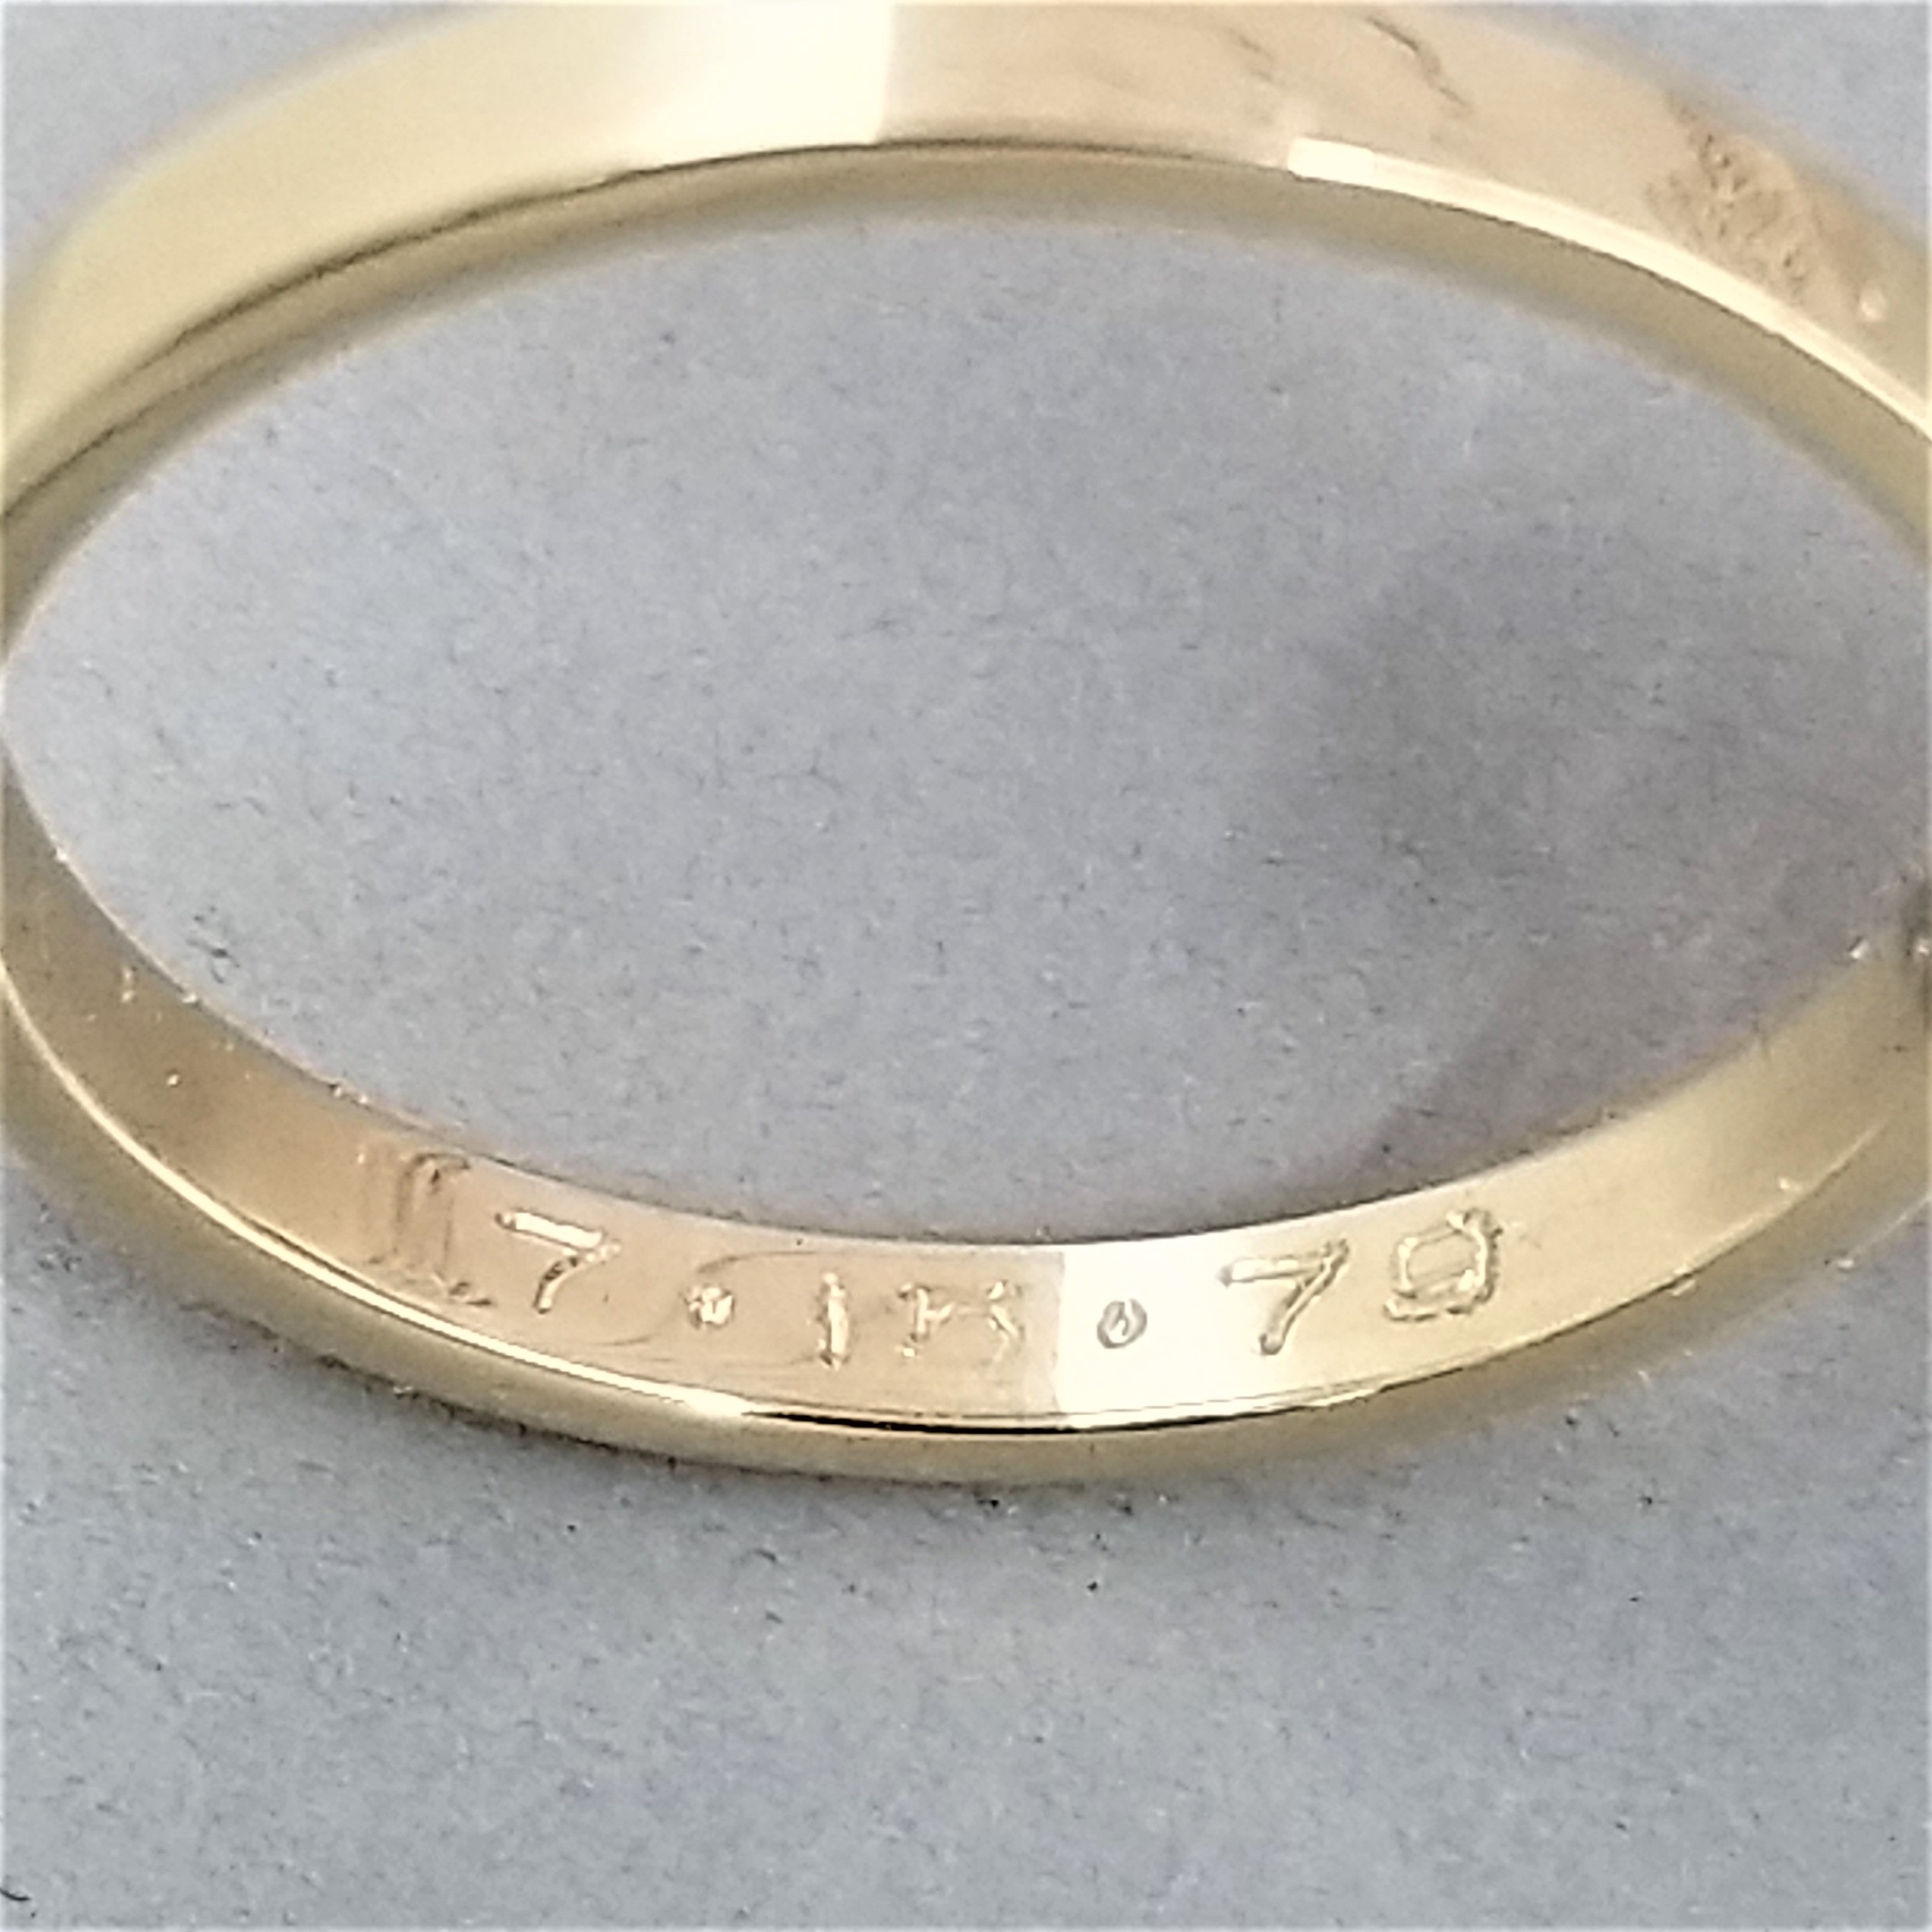 thin wedding band inscription engraved by machine